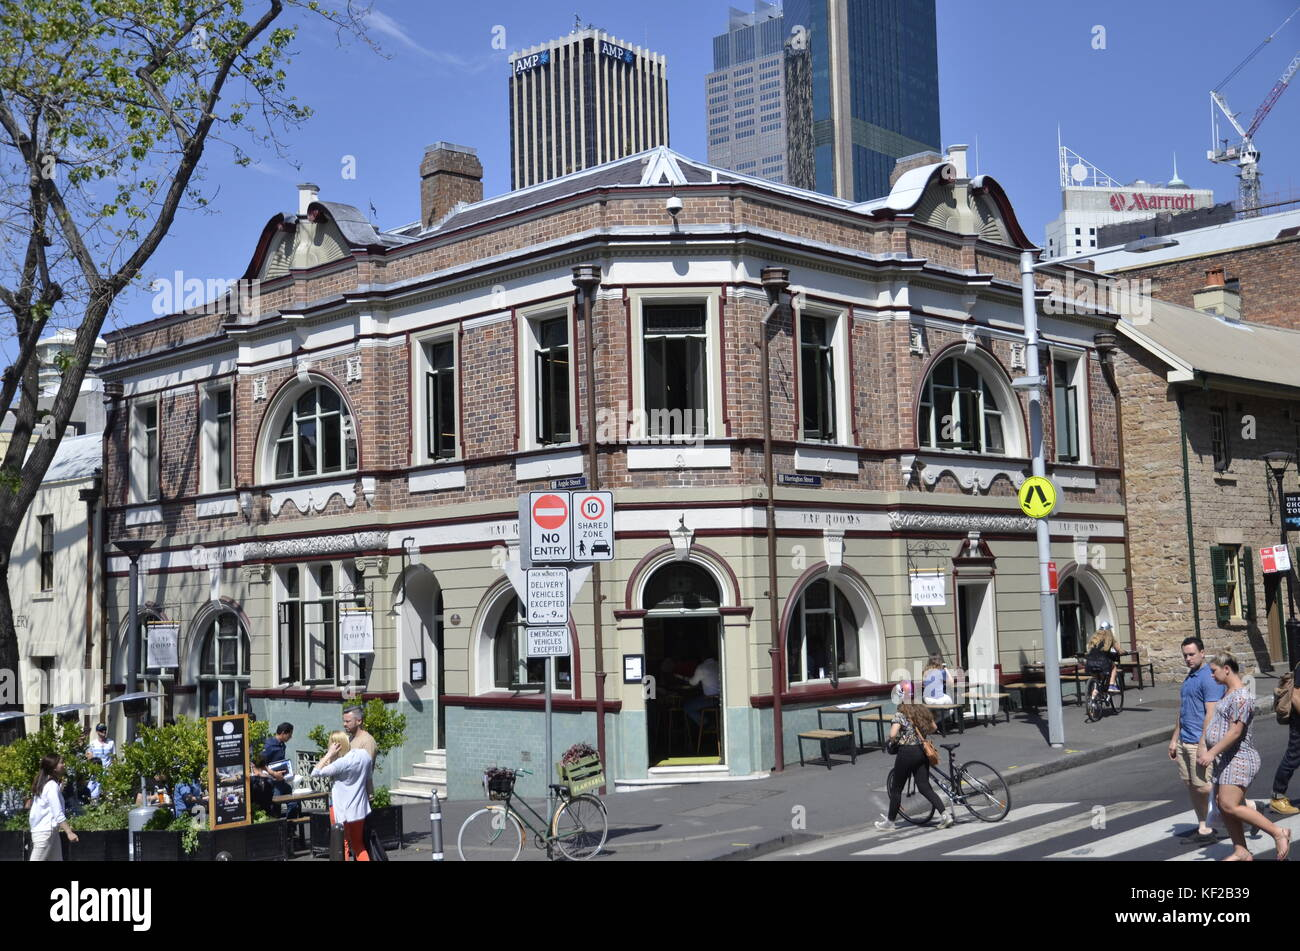 The Endeavour Tap House brew pub in Argyle Street in Sydney's Rocks area - Stock Image